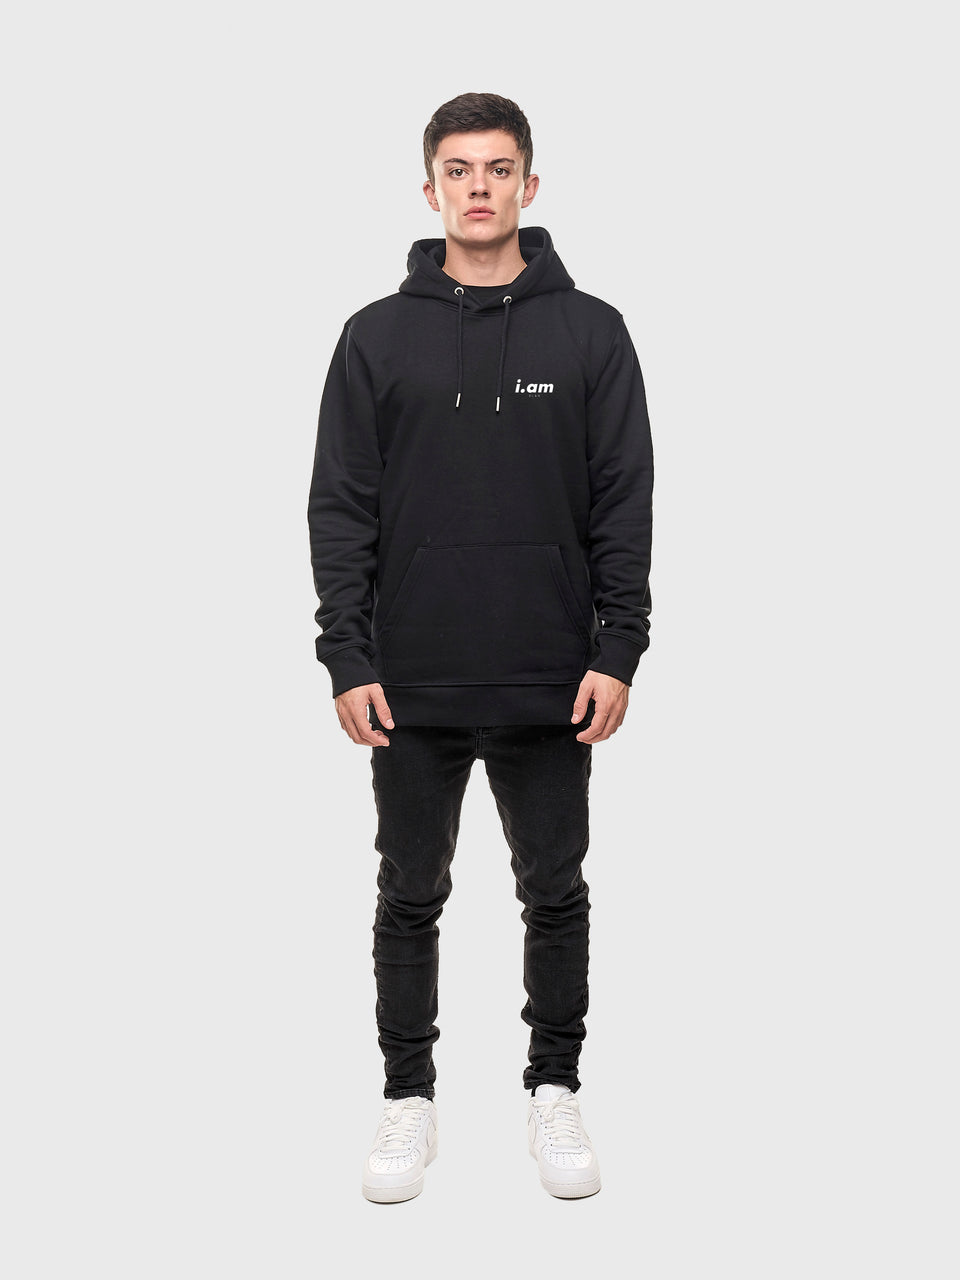 A good story - Black - Unisex pull over hoodie